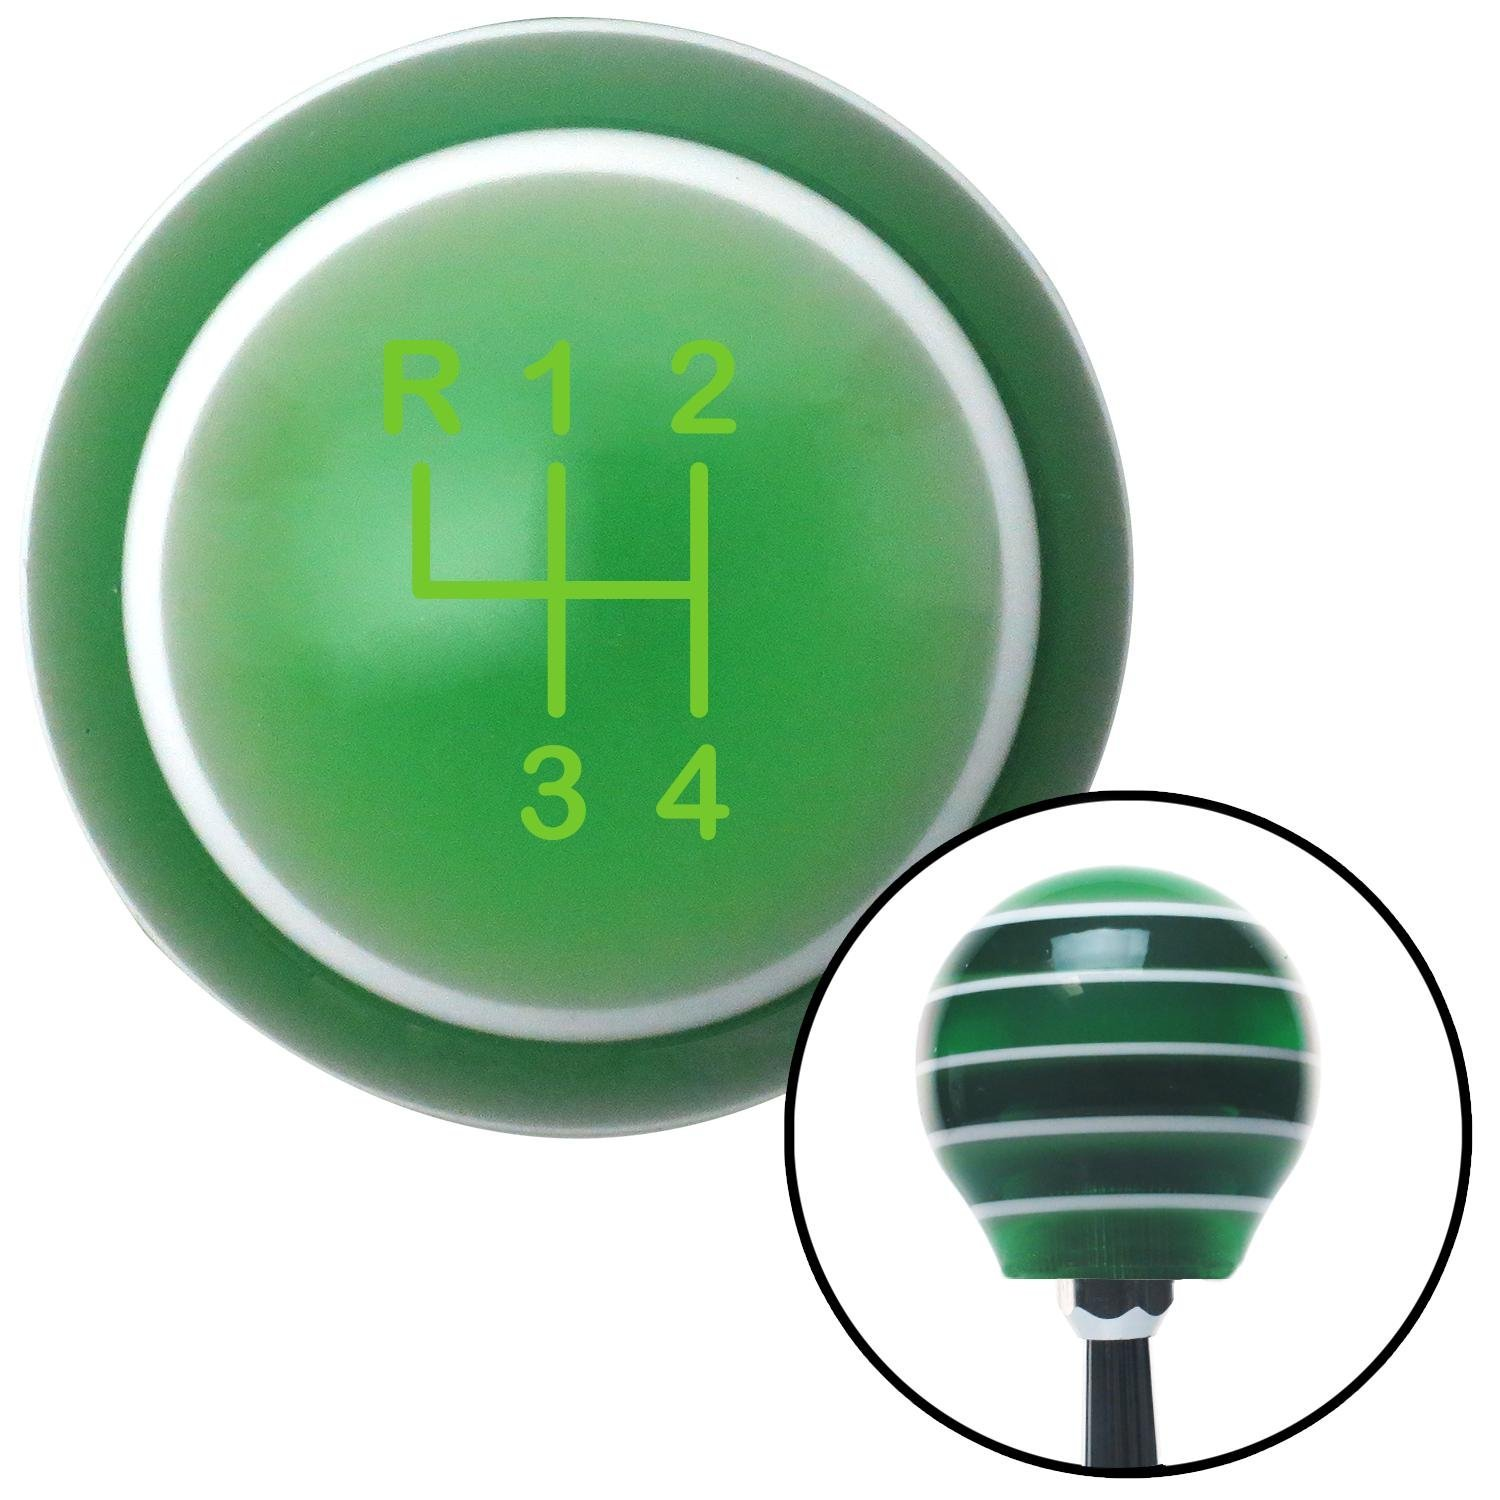 Green Shift Pattern 44n American Shifter 127177 Green Stripe Shift Knob with M16 x 1.5 Insert